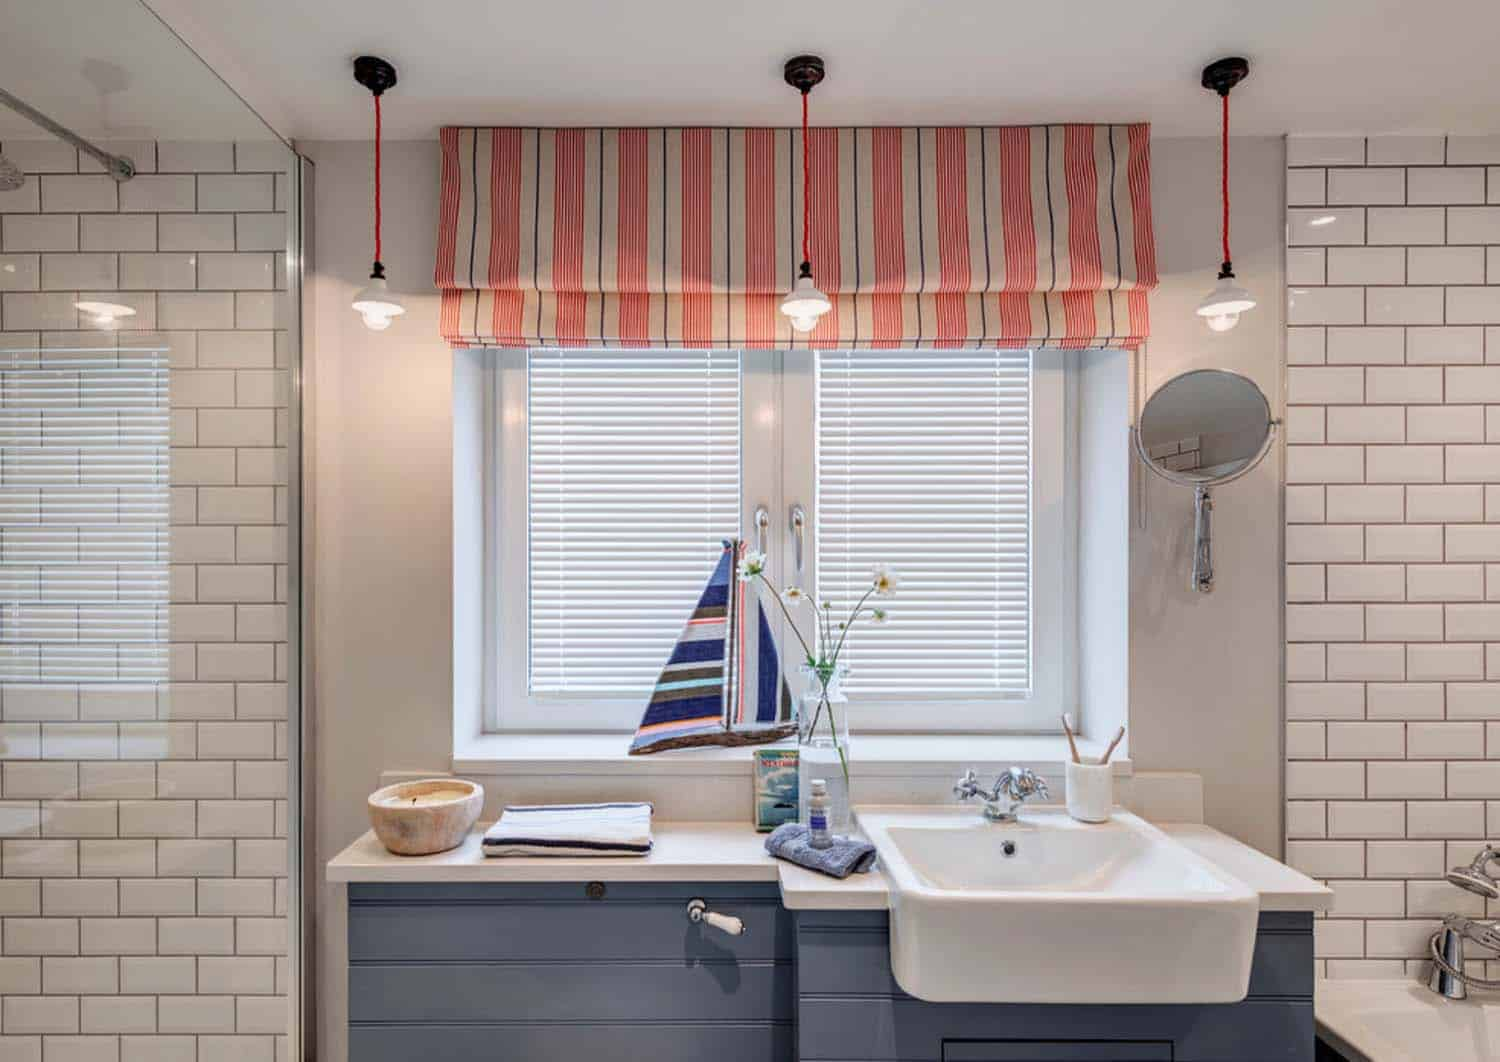 seaside-bungalow-renovation-woodford-architecture-13-1-kindesign